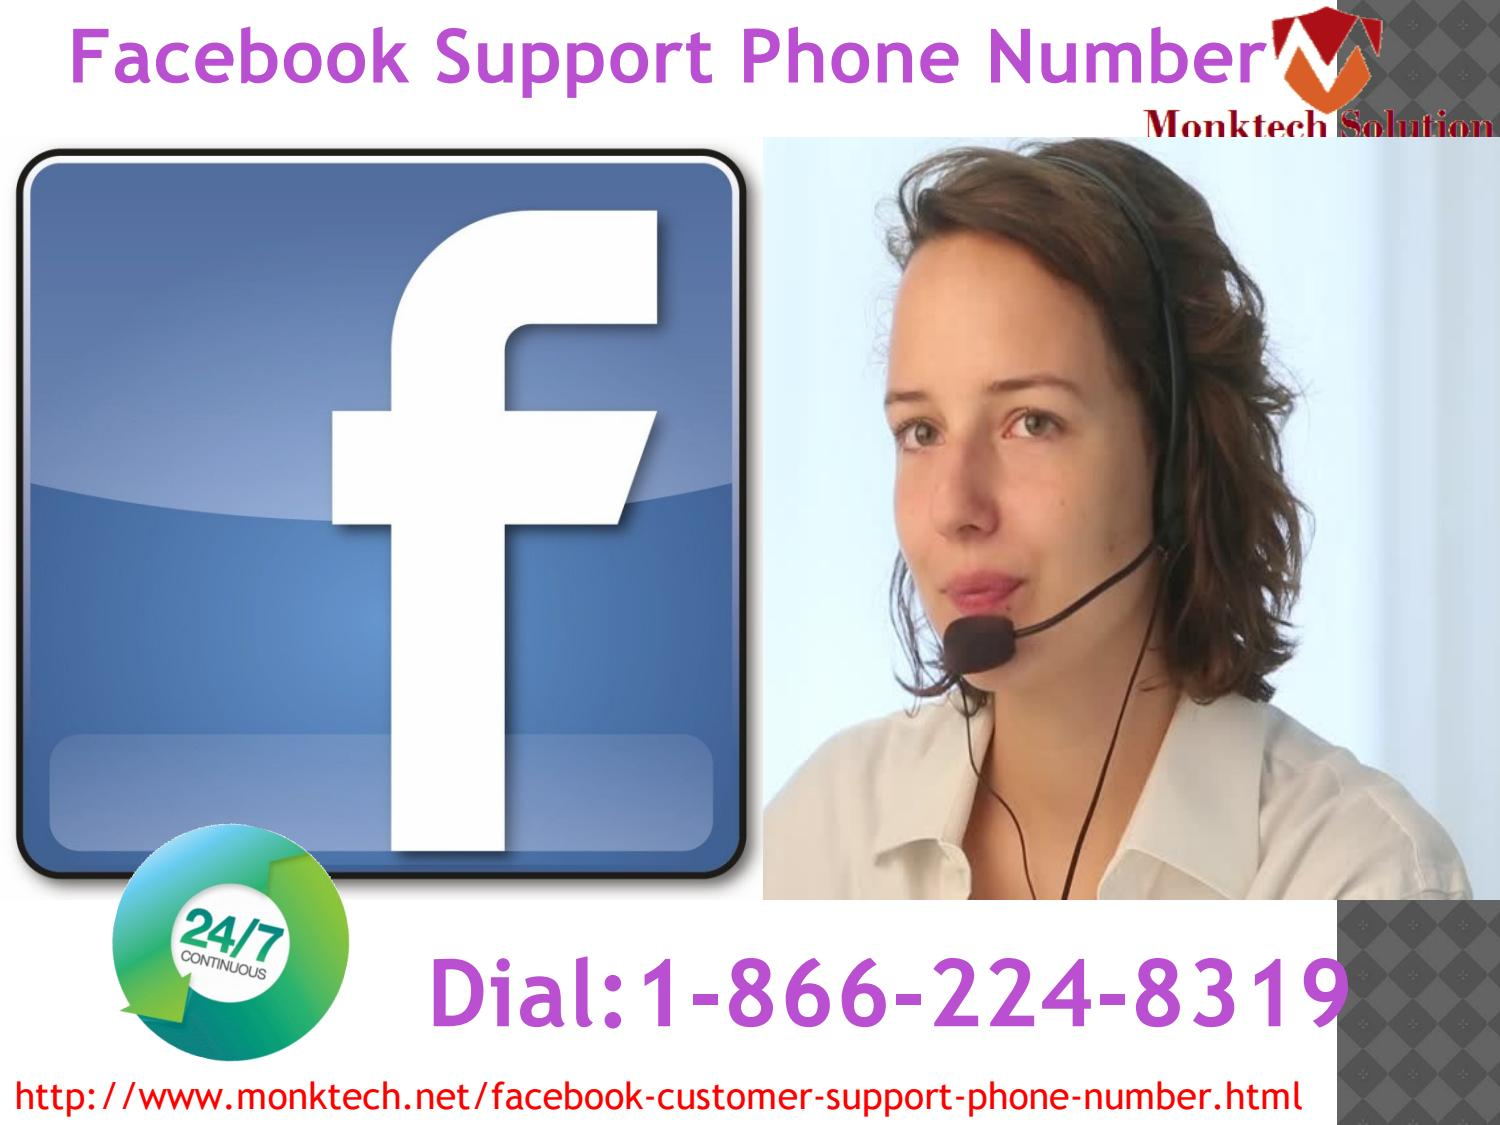 Dial facebook support phone number 18662248319 for genuine and easy solution by Steve Wayne